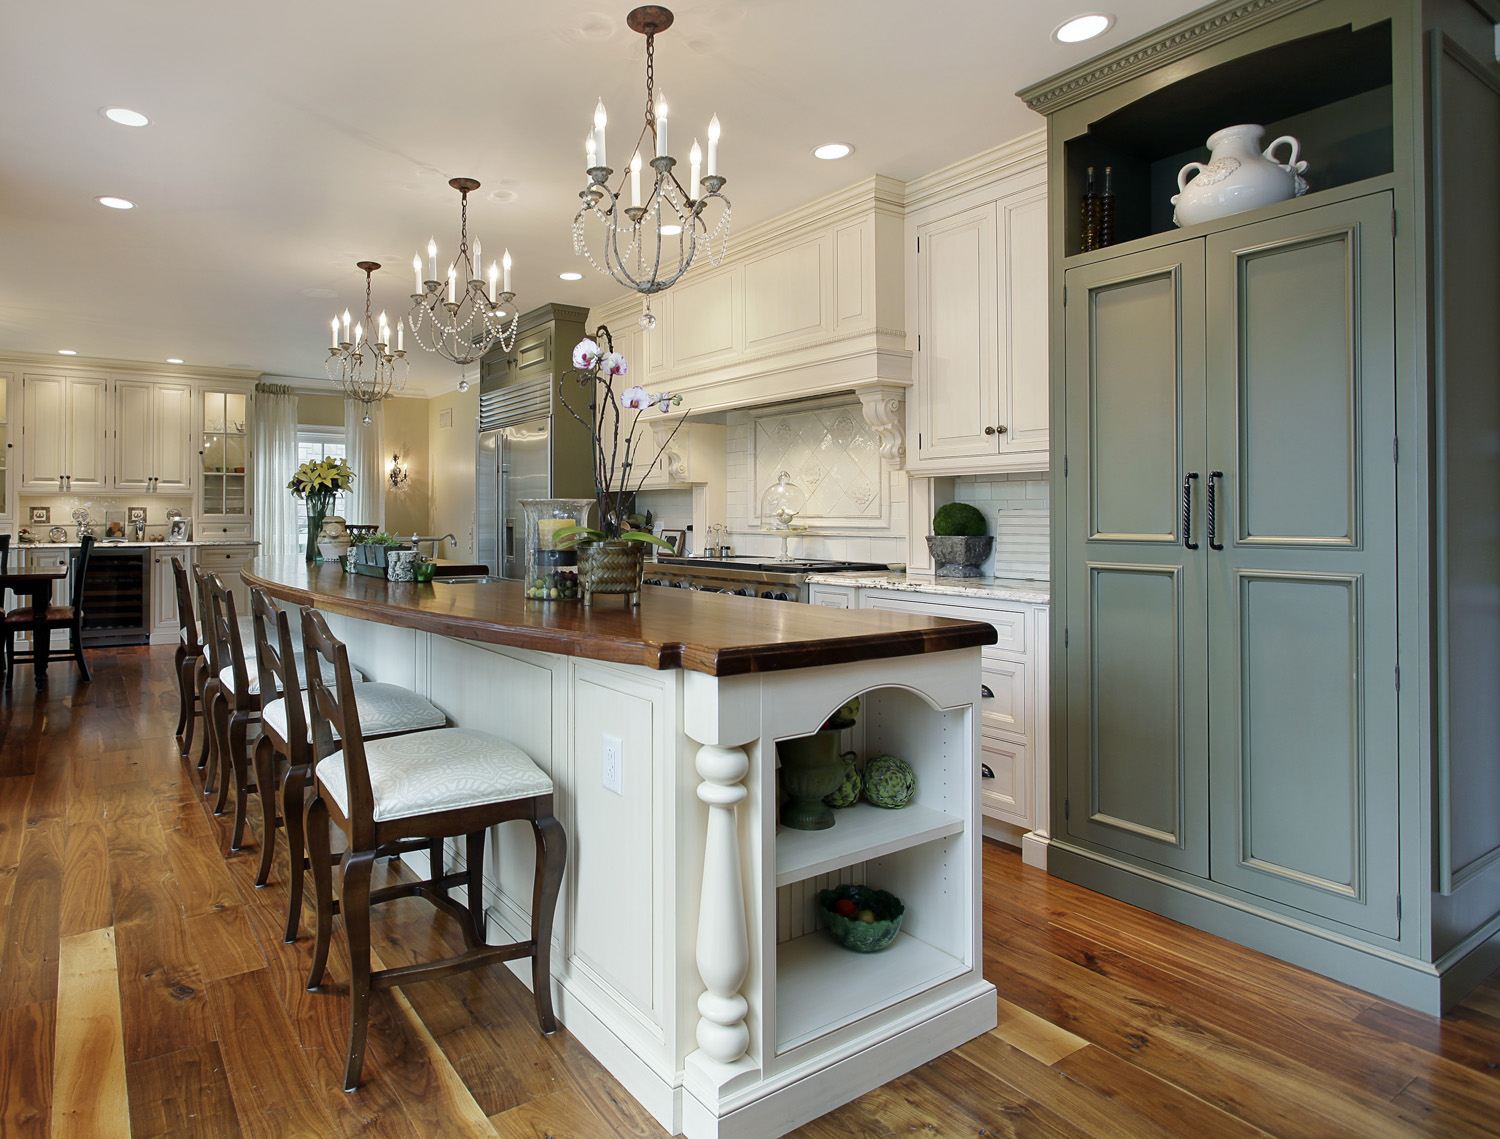 kitchen cabinet manufacturers canada used metal cabinets for sale what's driving the & countertop industries? trends ...